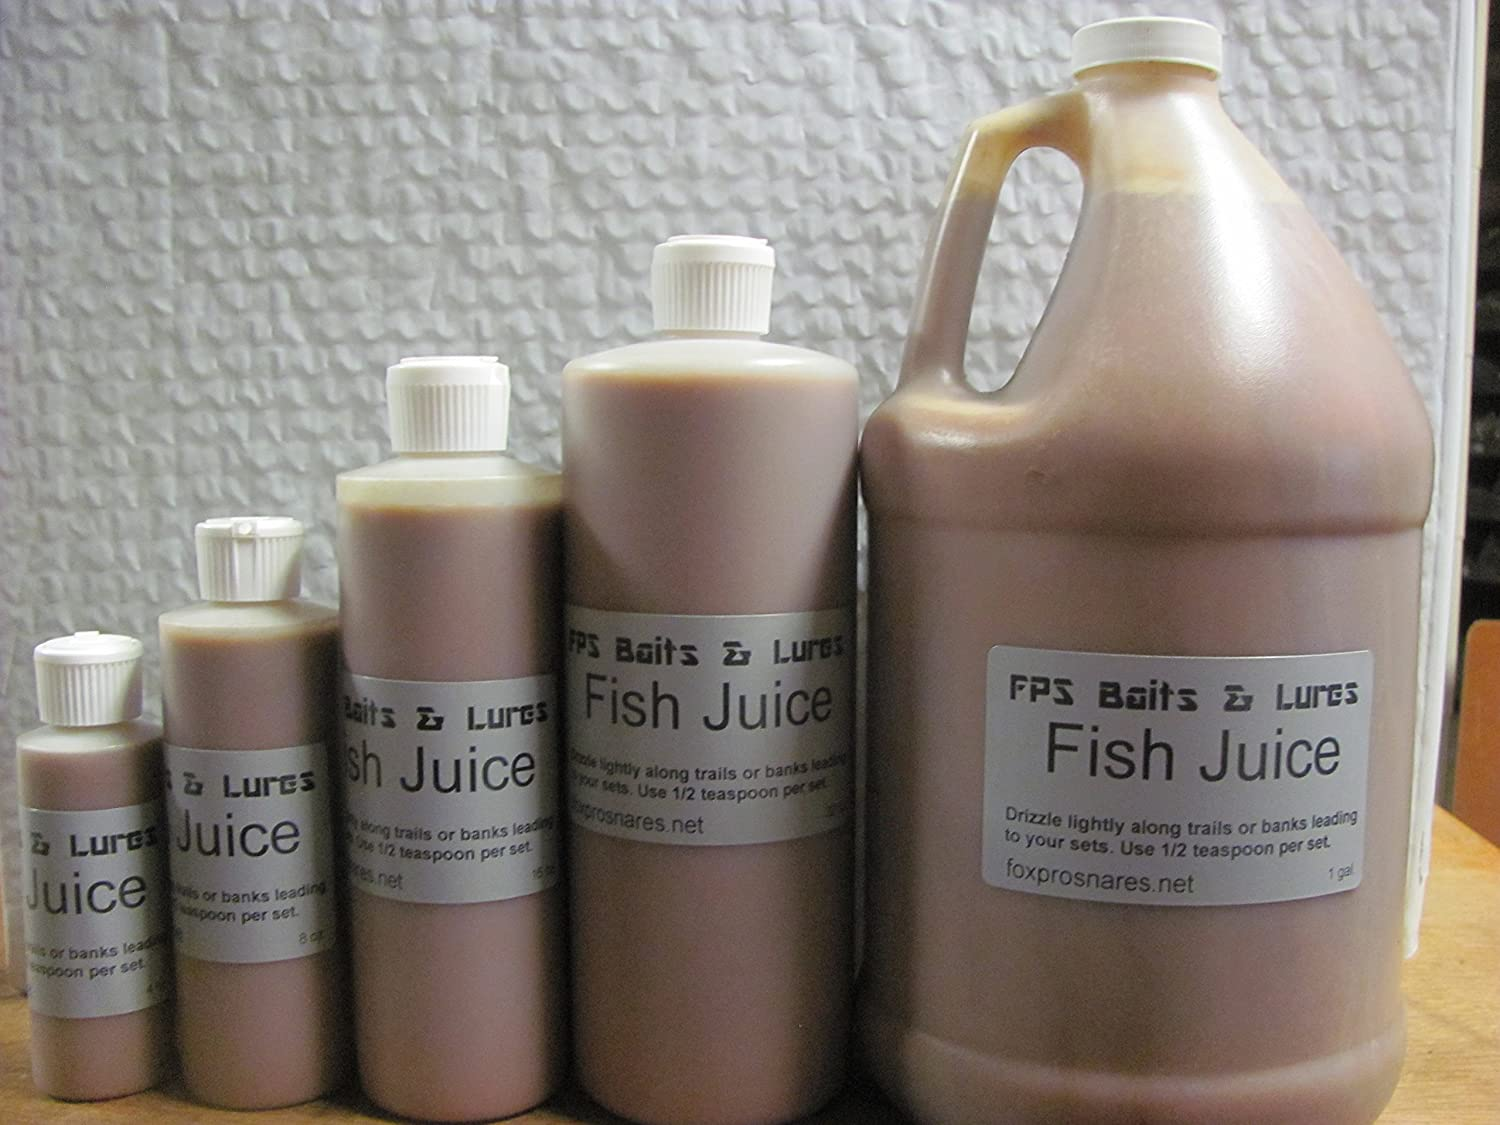 FPS Baits & Lures (Fish Juice) Furbearers Trapping Trap Snares CHOICE